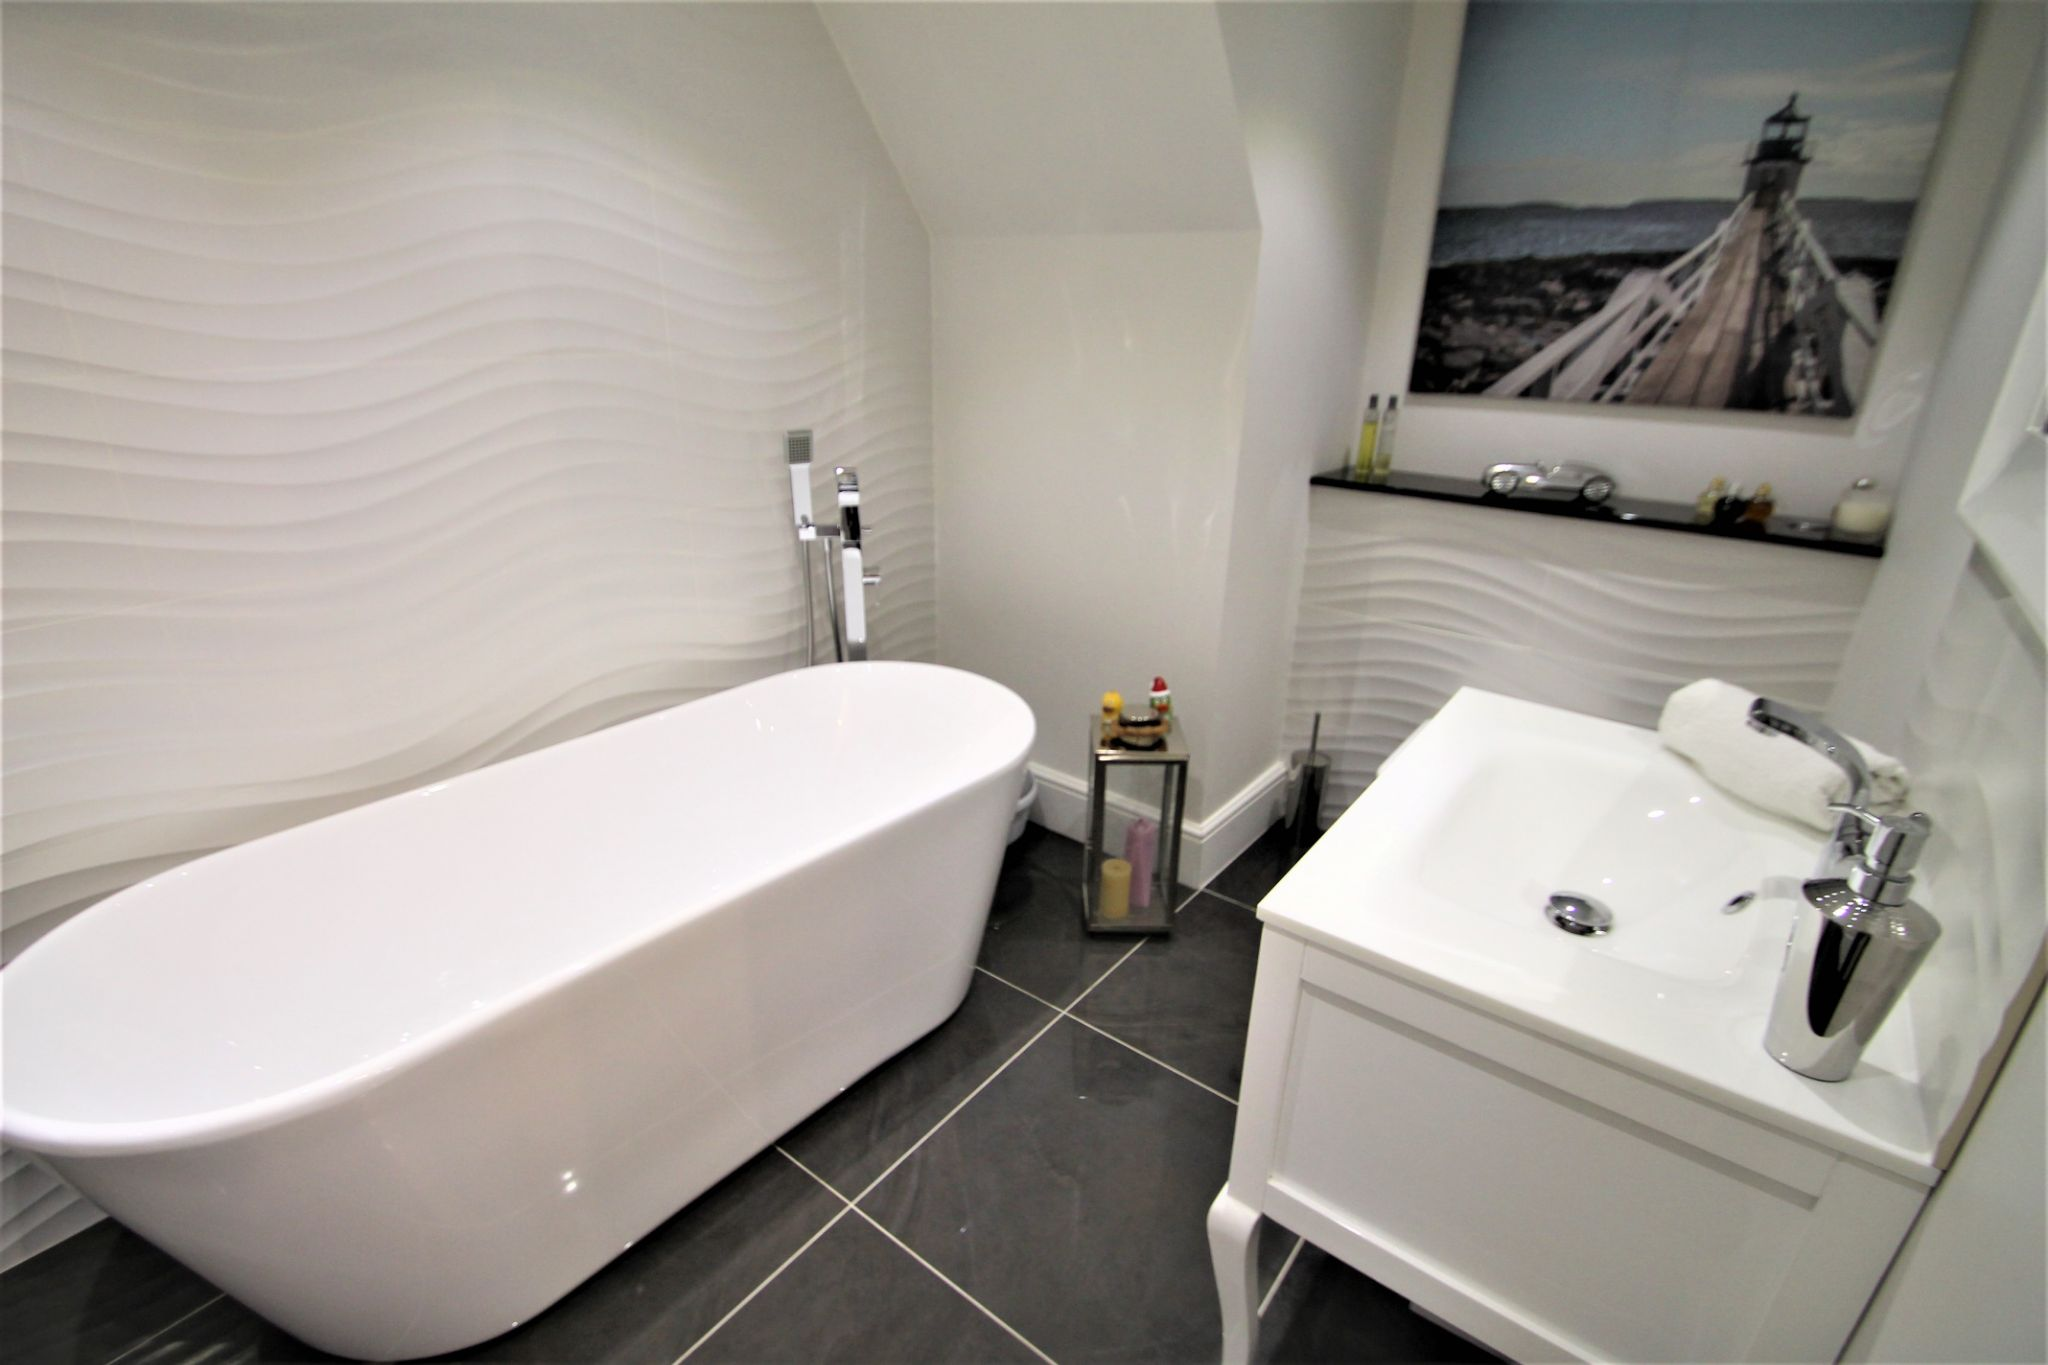 5 Bedroom Detached House For Sale - Bathroom